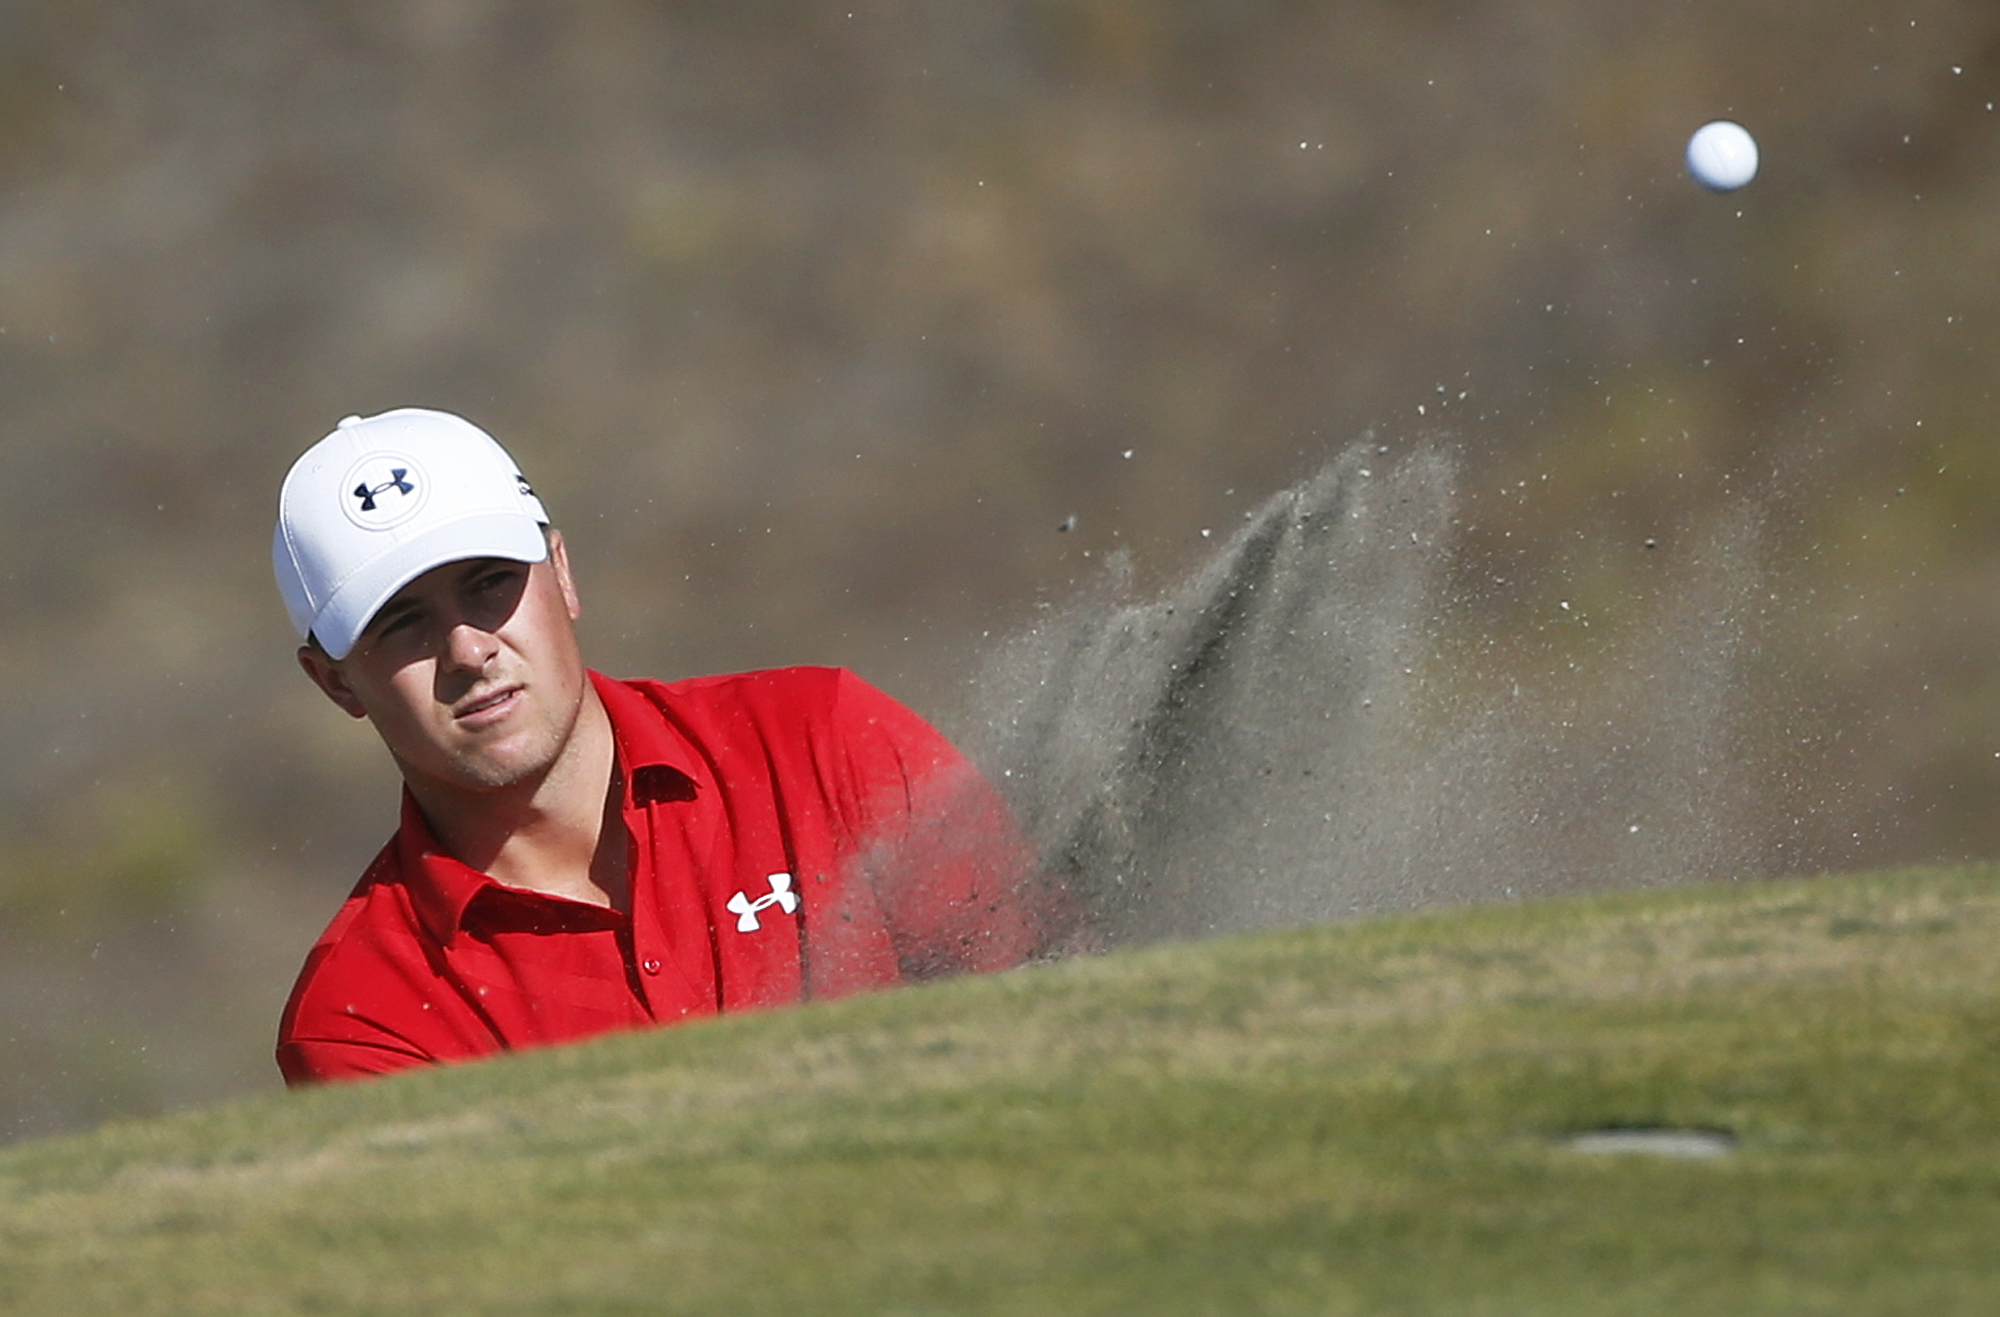 Jordan Spieth hits out of the bunker on the ninth hole during the third round of the U.S. Open golf tournament at Chambers Bay on Saturday, June 20, 2015 in University Place, Wash. (AP Photo/Lenny Ignelzi)